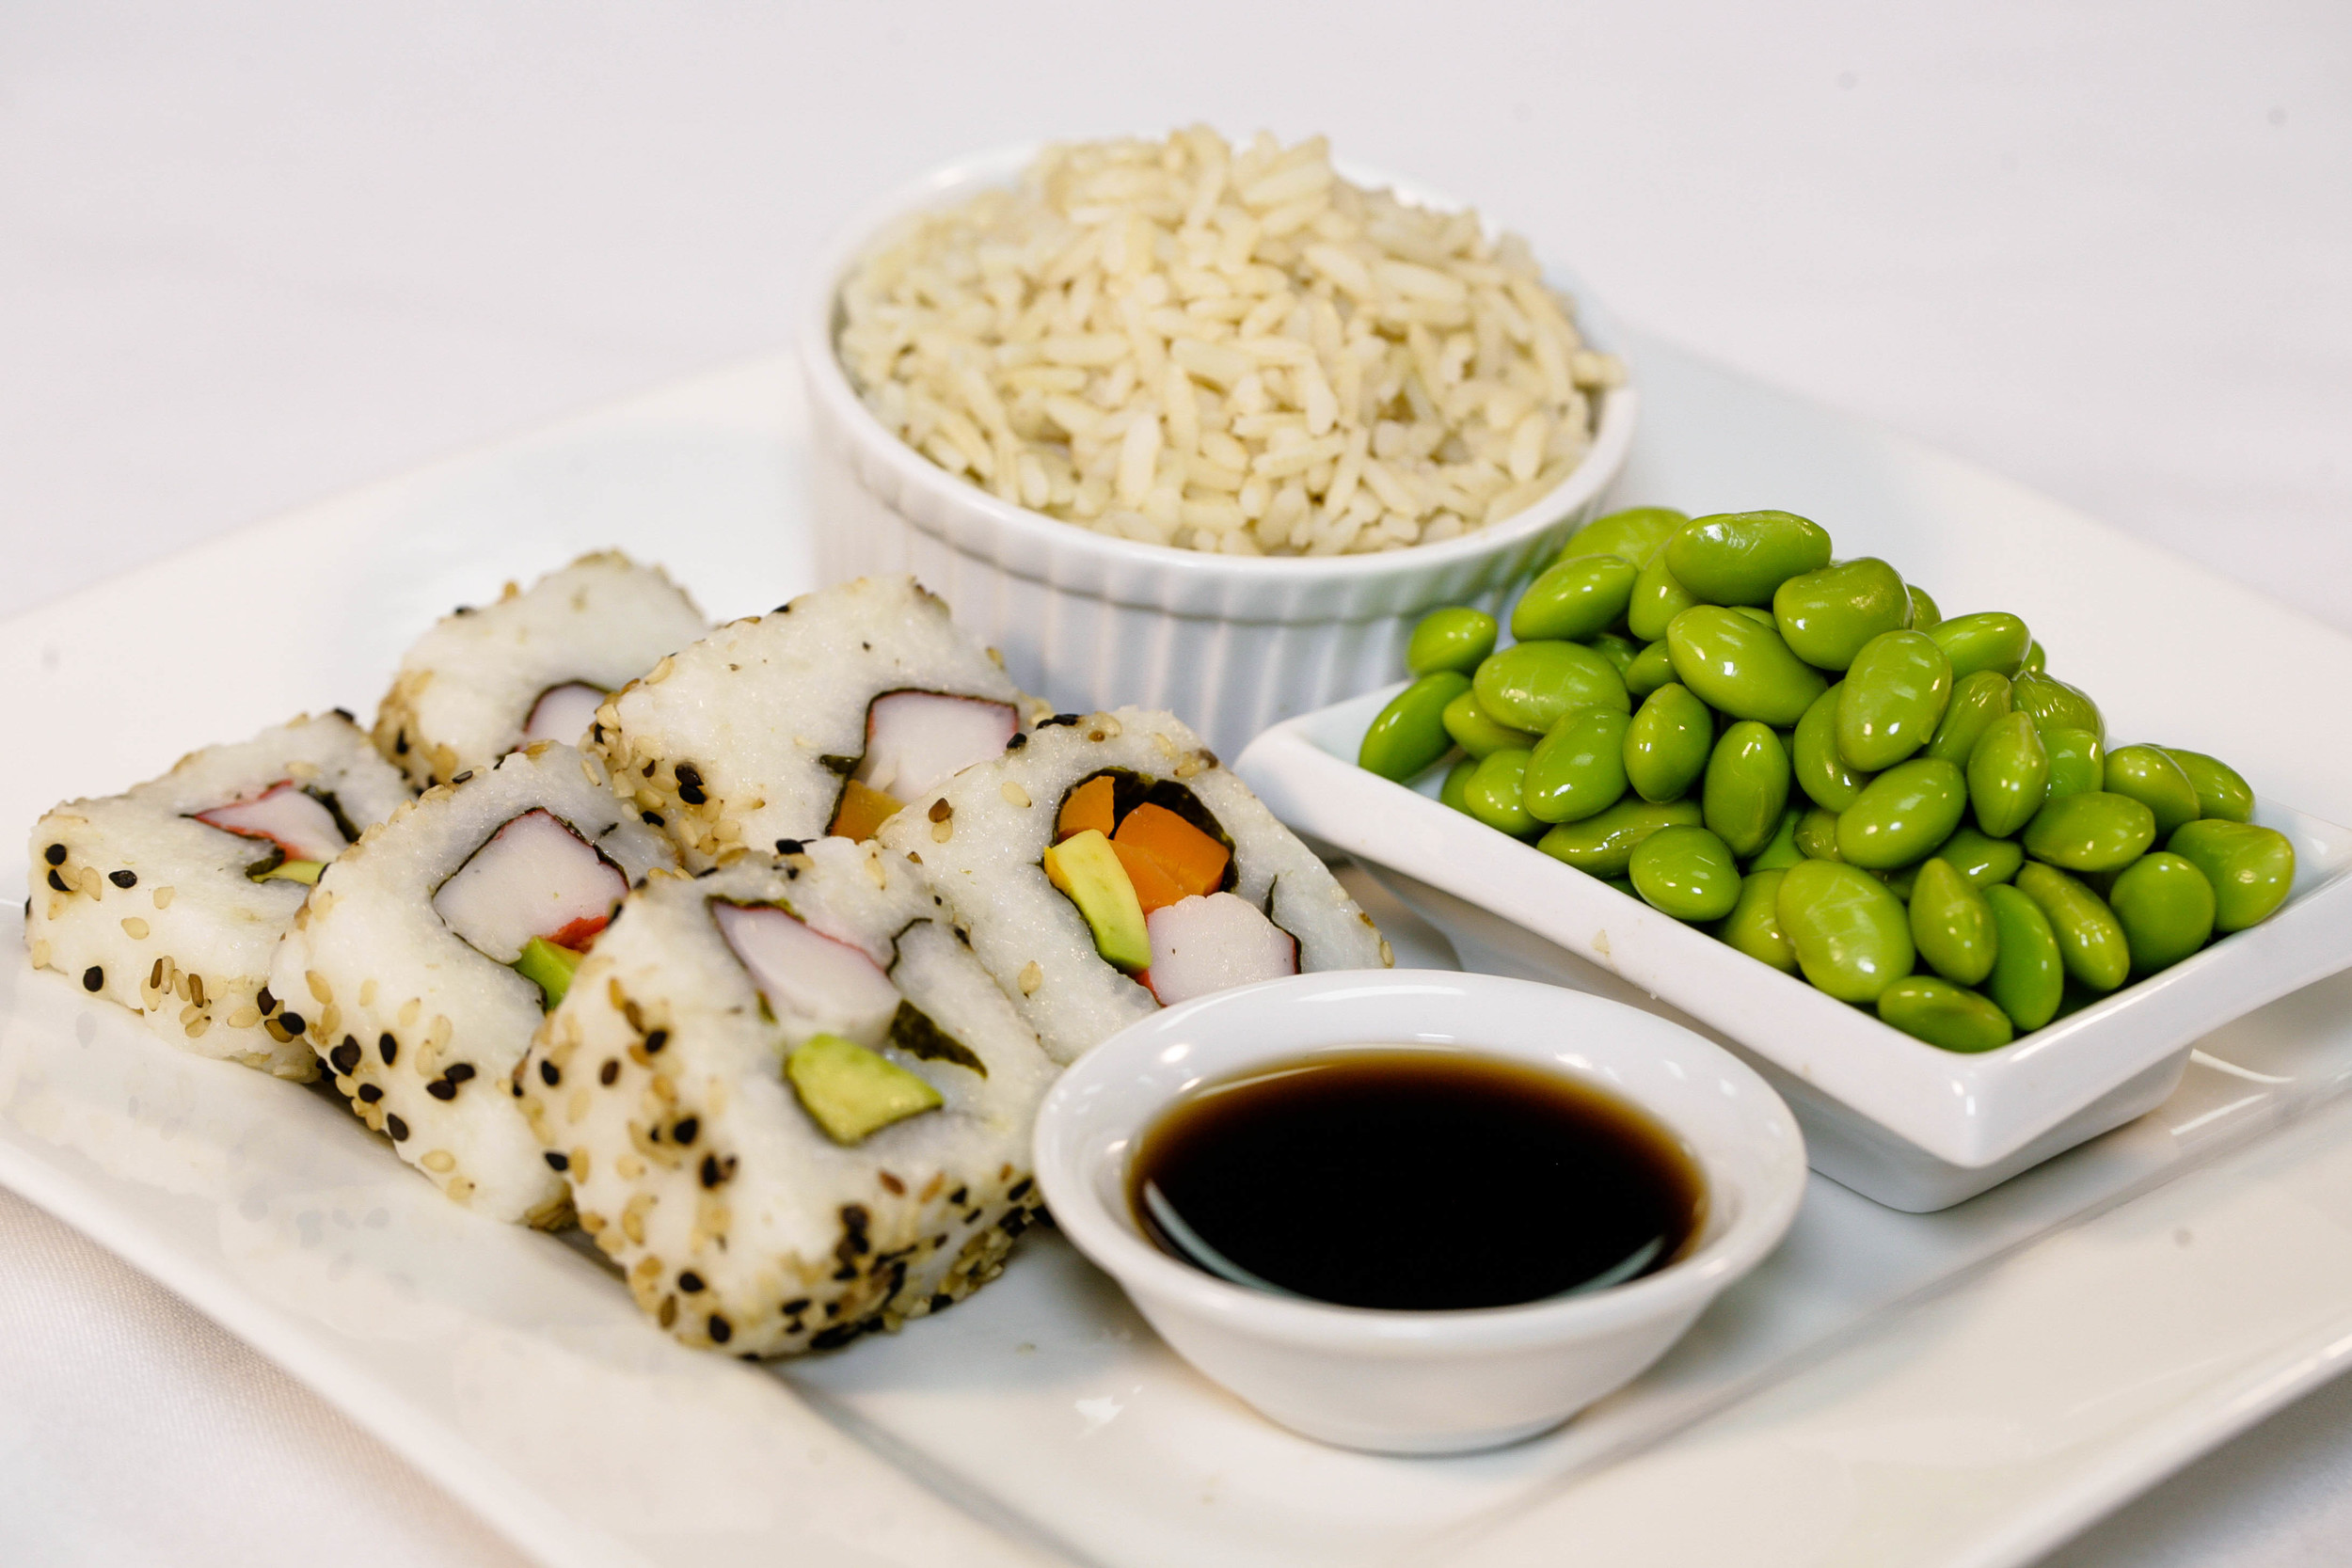 California Rolls with brown rice, edamame and soy sauce